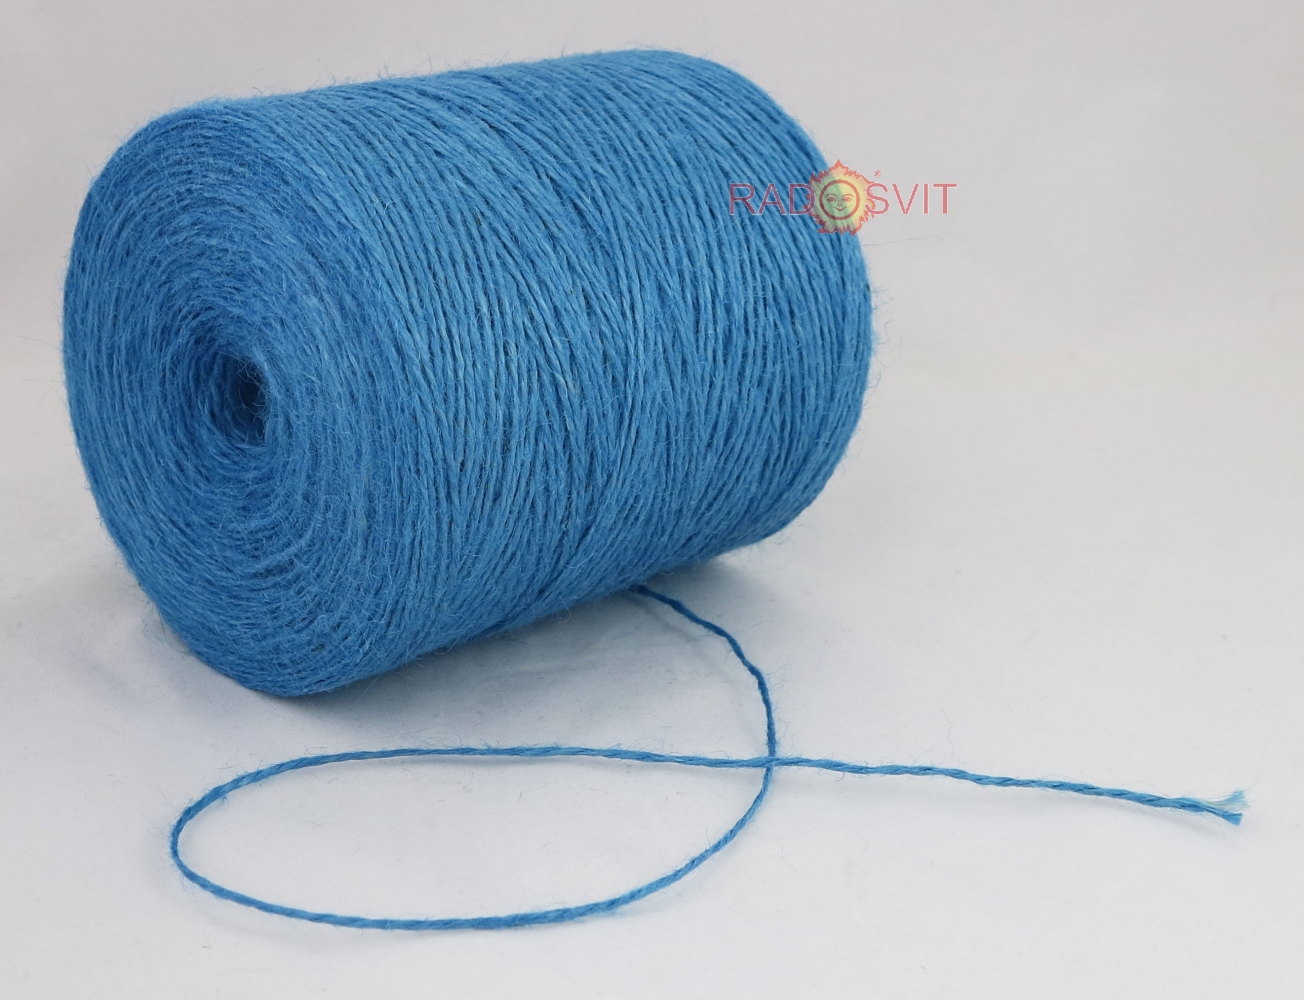 Jute twine light blue, 760 meters - 2